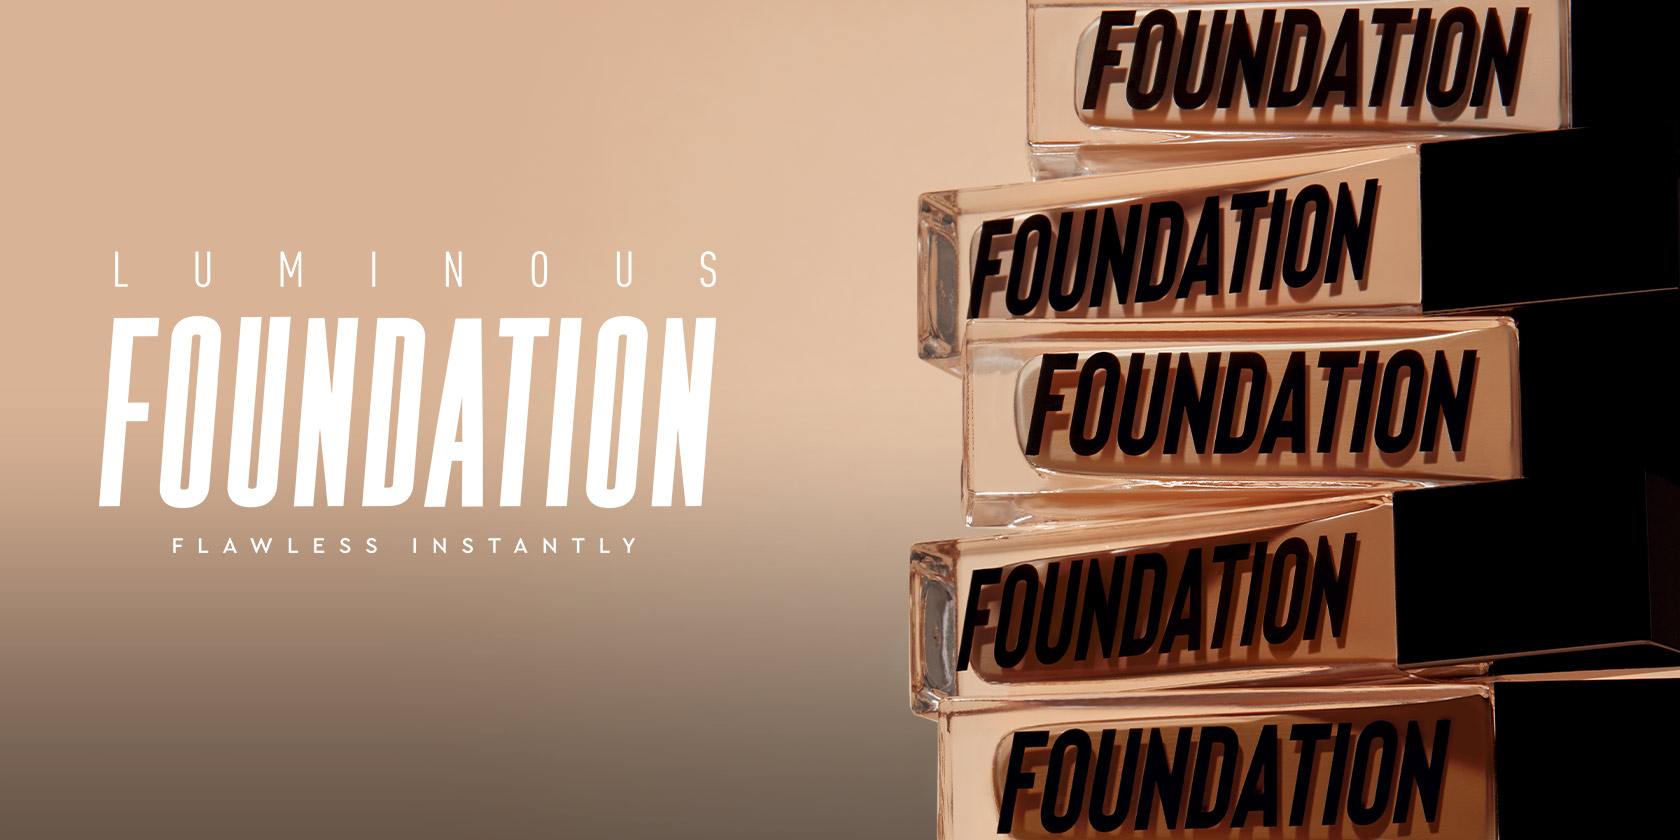 Luminous Foundation - Flawless Instantly